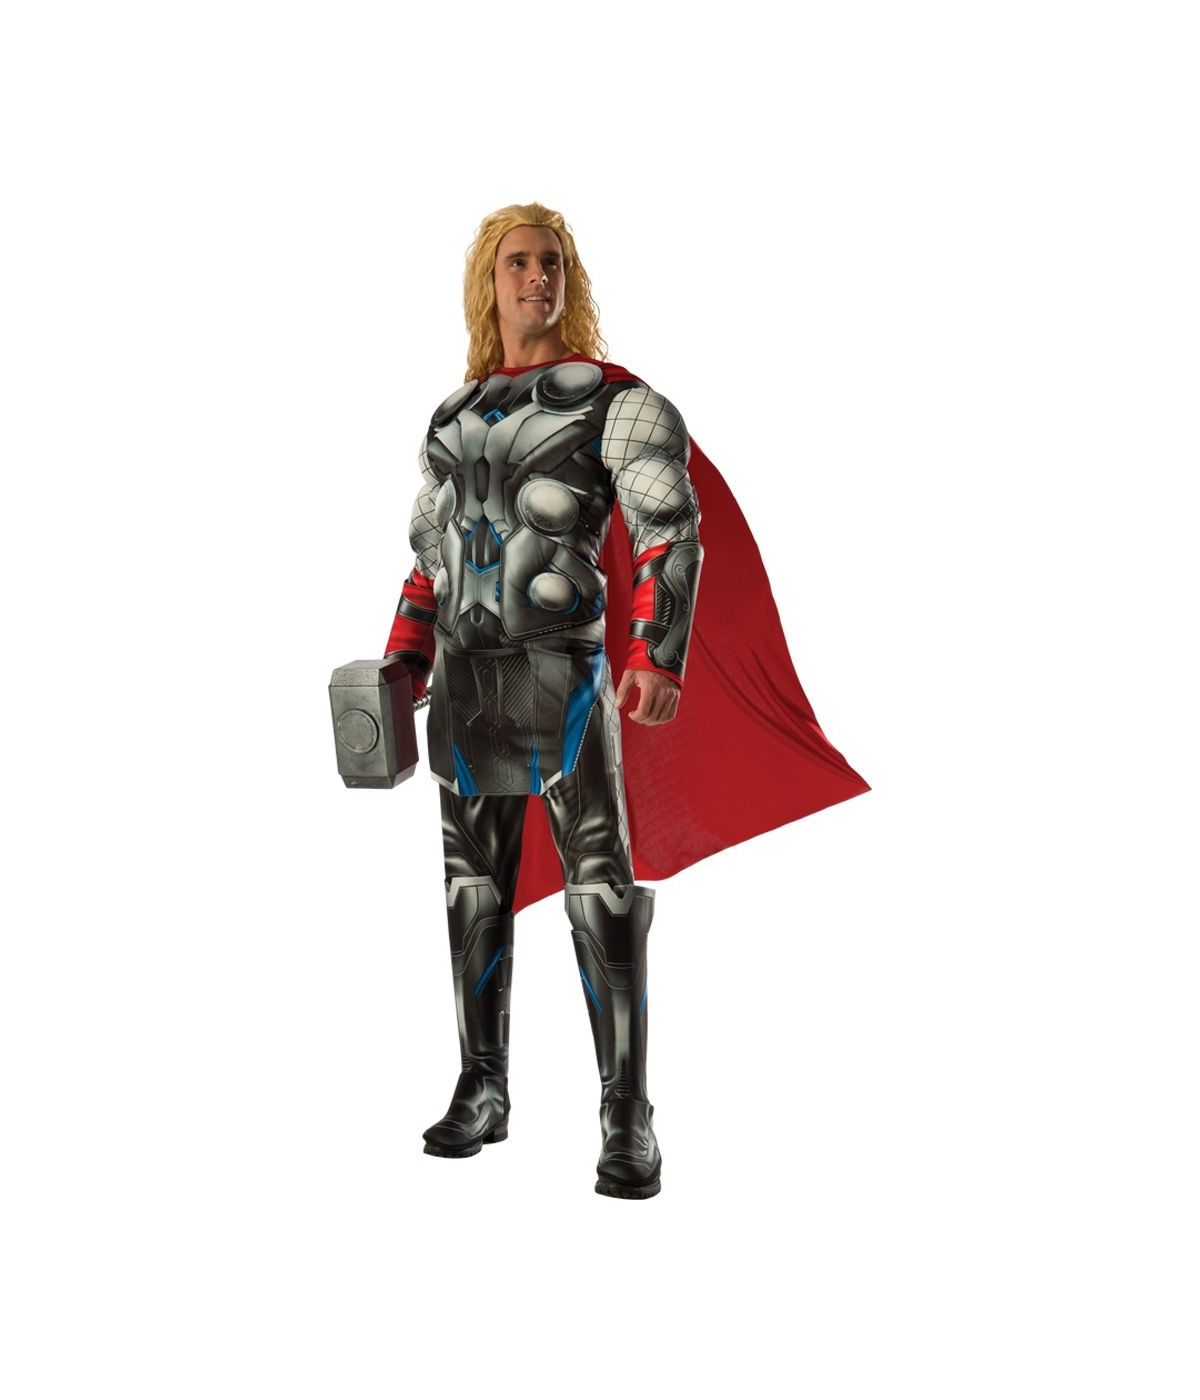 Thor Ultron Avengers Mens Costume - Superhero Costume